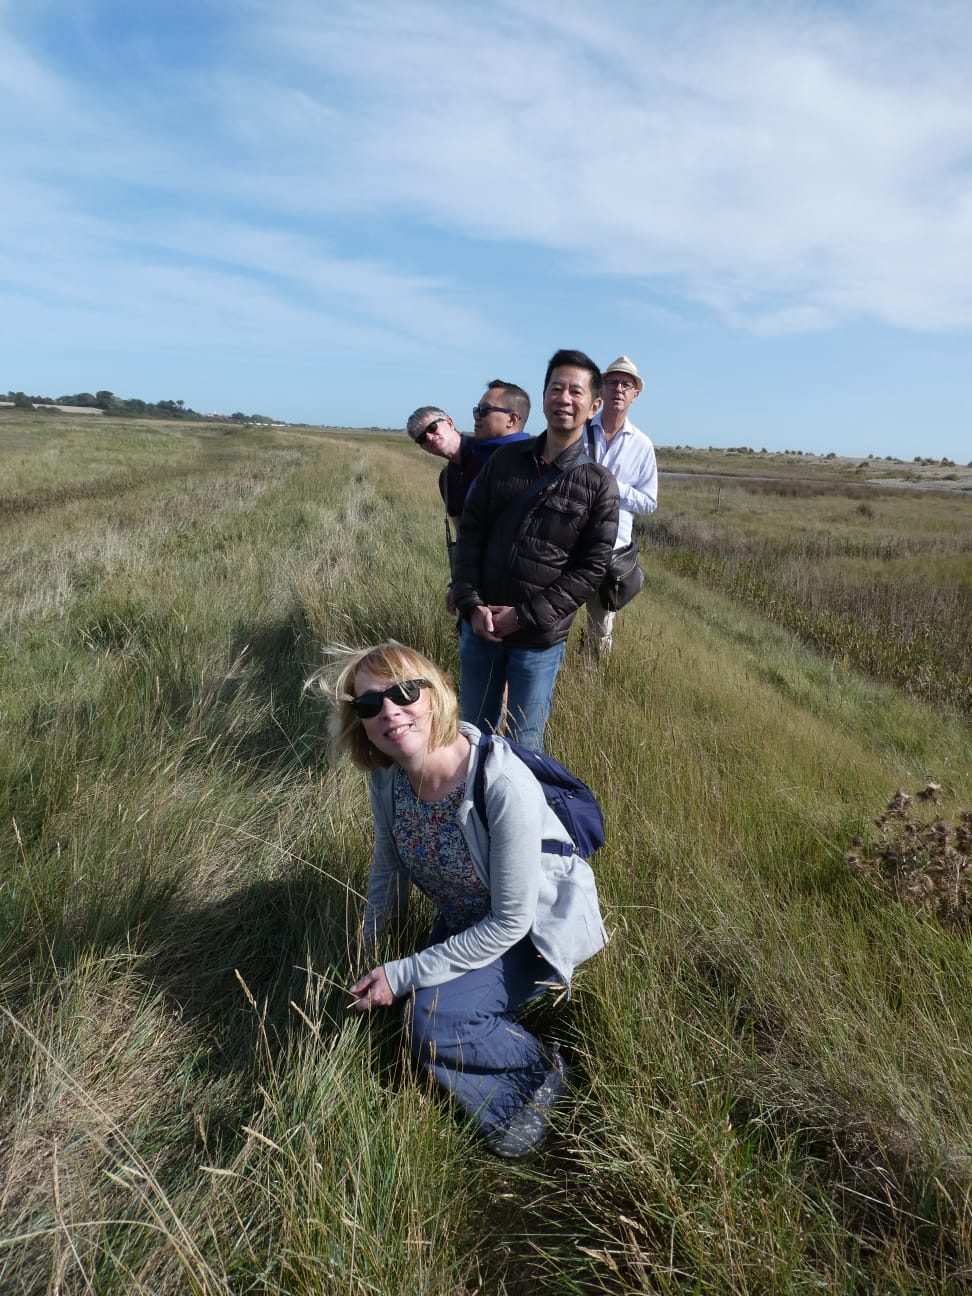 group of people posing on a pth surrounded by marshland and reed beds